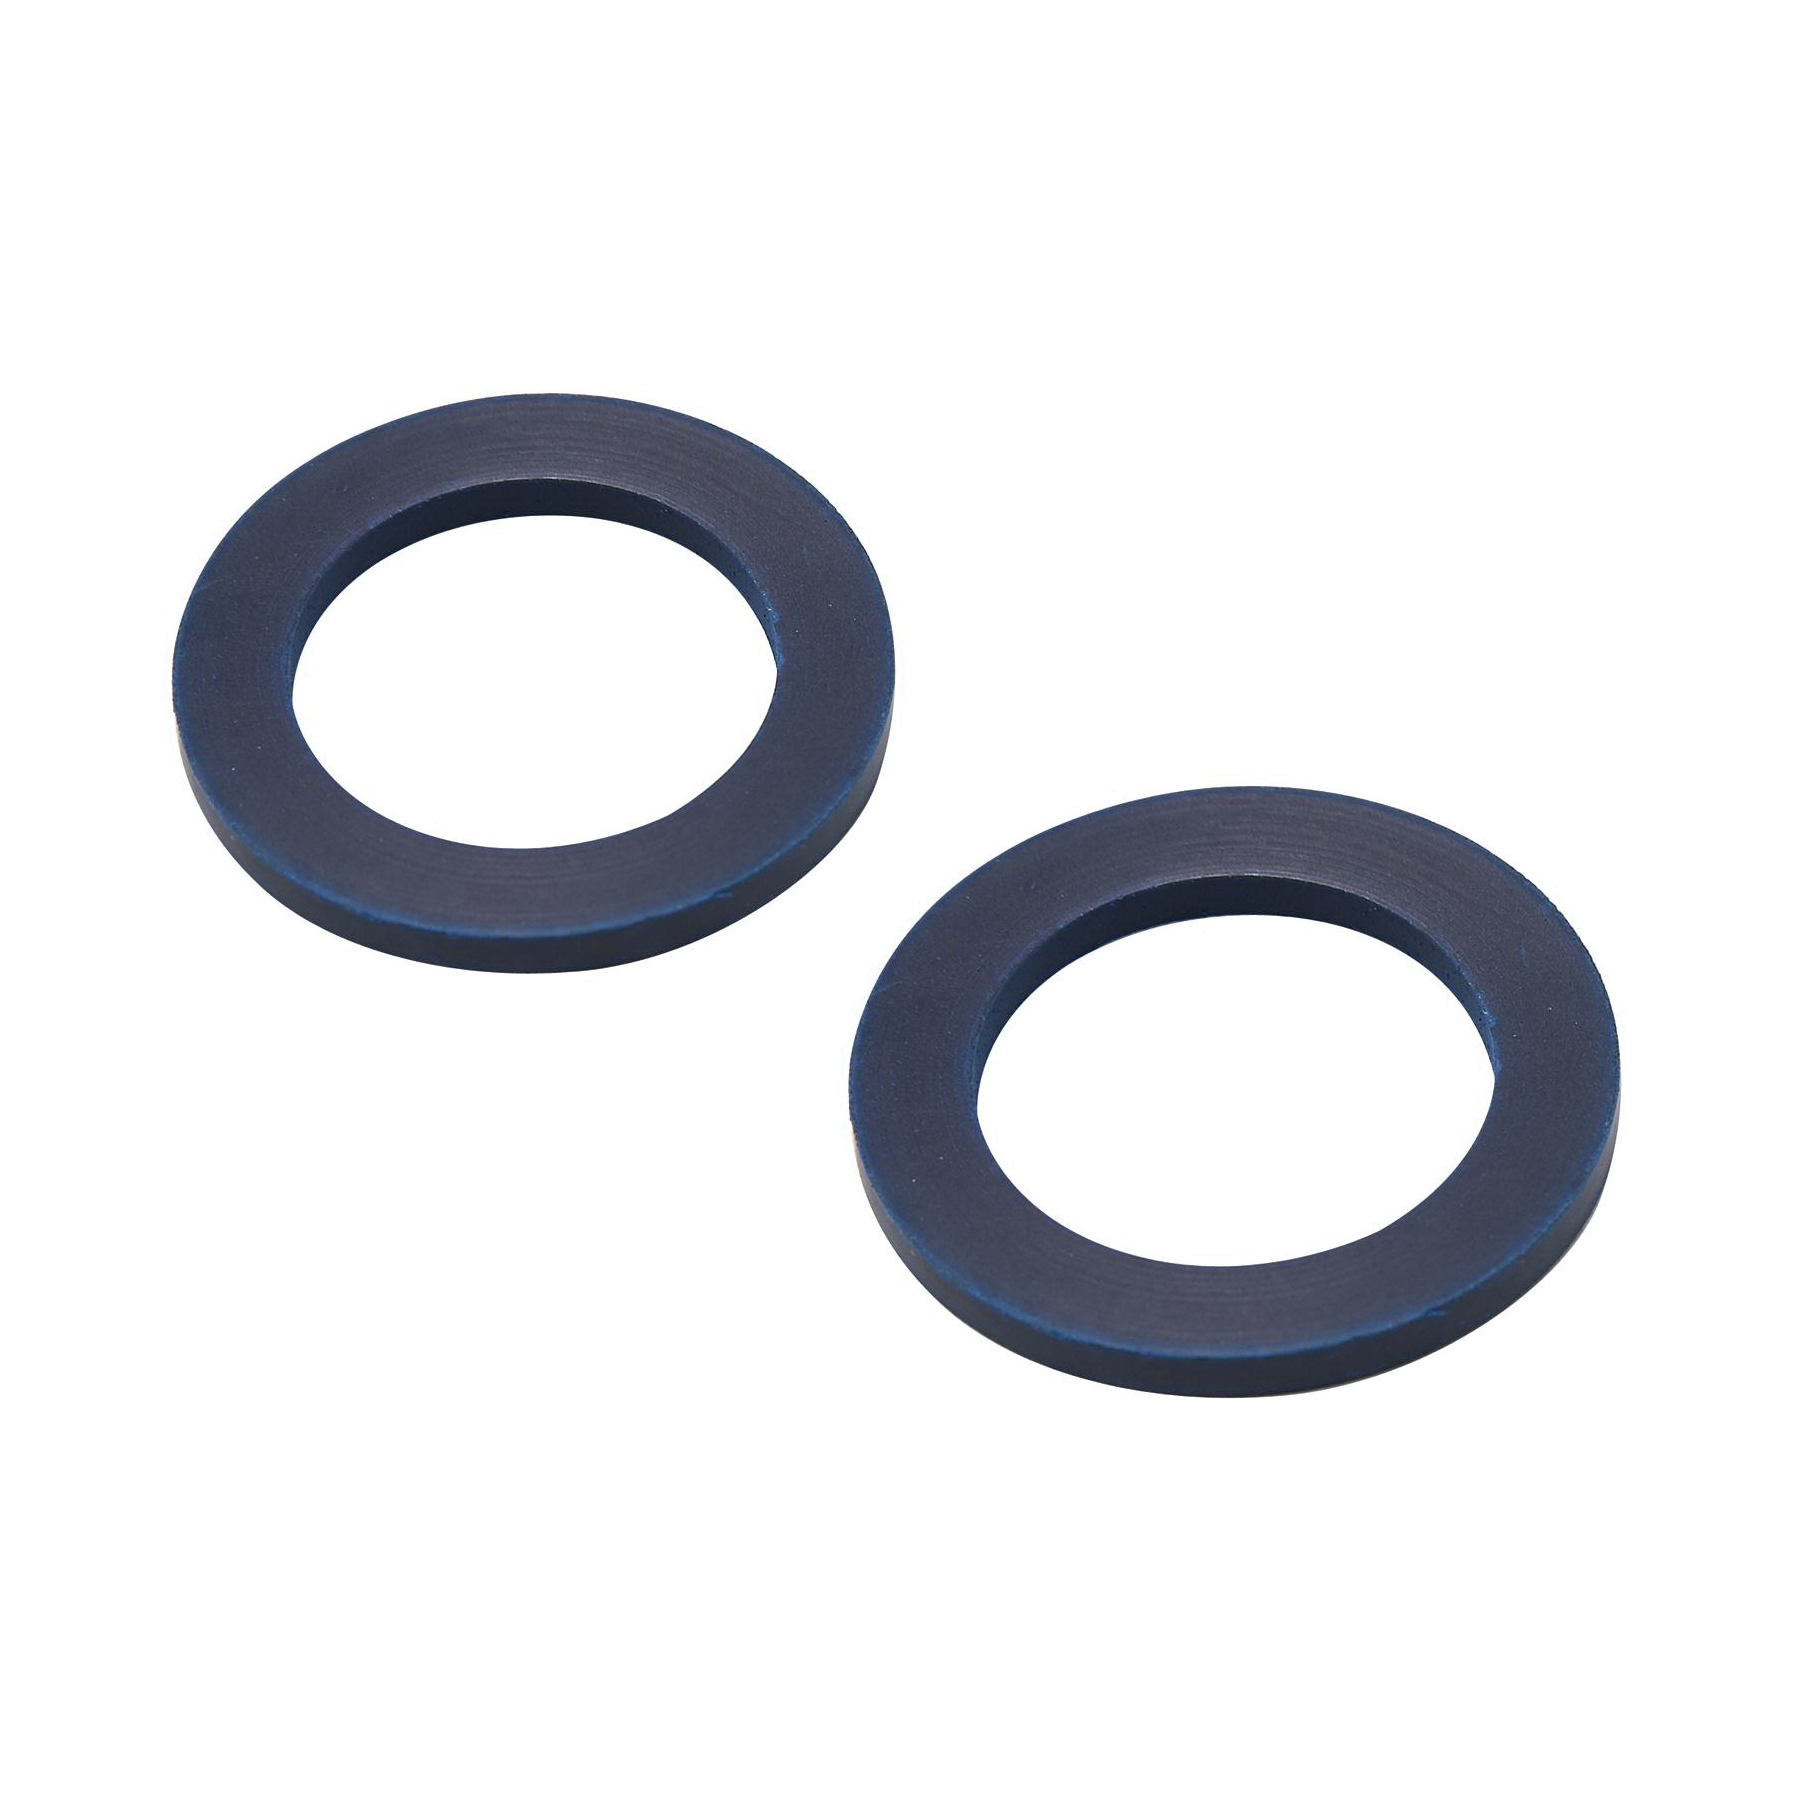 WATTS® 0881427 KIT GB Dielectric Union Gasket Kit, 1 in Nominal